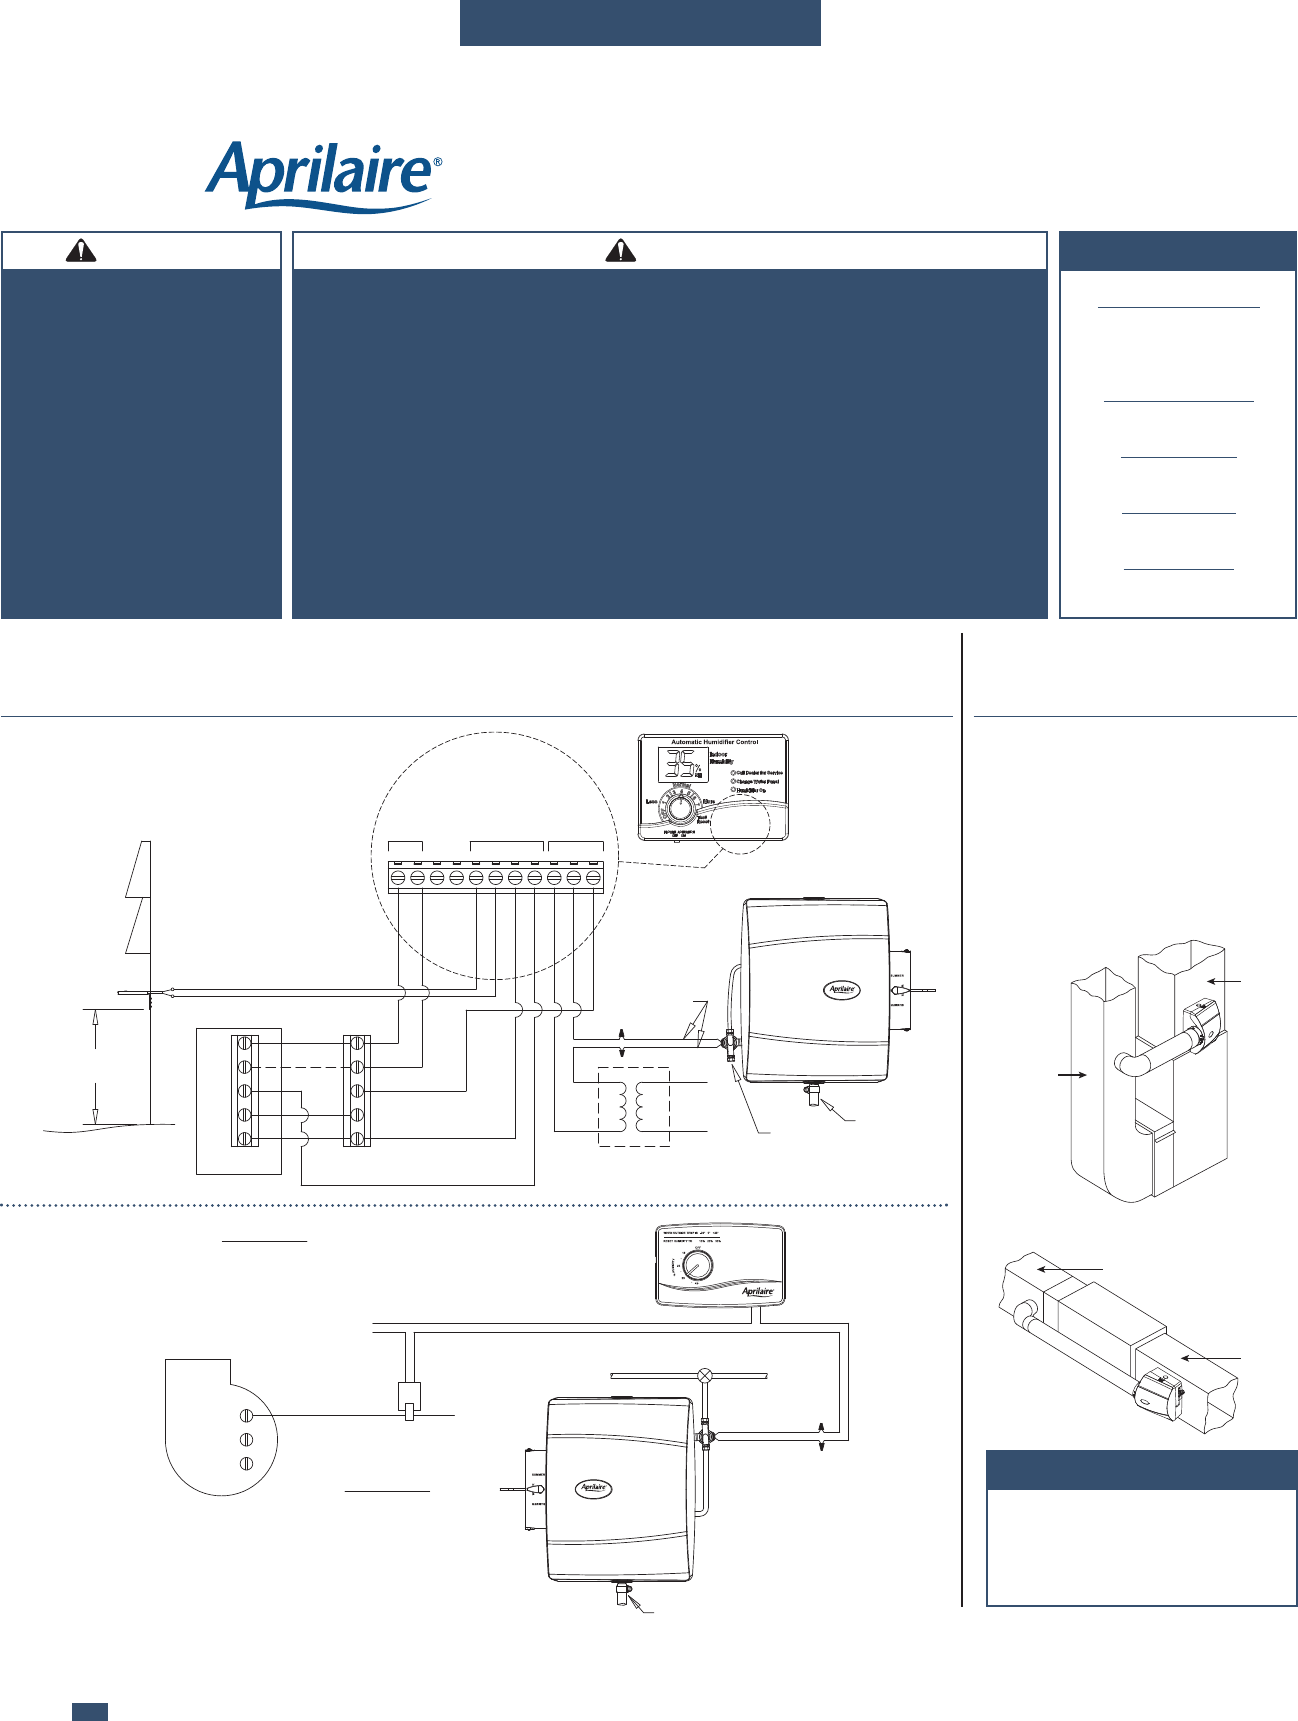 [SCHEMATICS_4UK]  Aprilaire Humidifier 600M Users Manual 10008975A AA 600 | Aprilaire 600a Wiring Diagram |  | UserManual.wiki